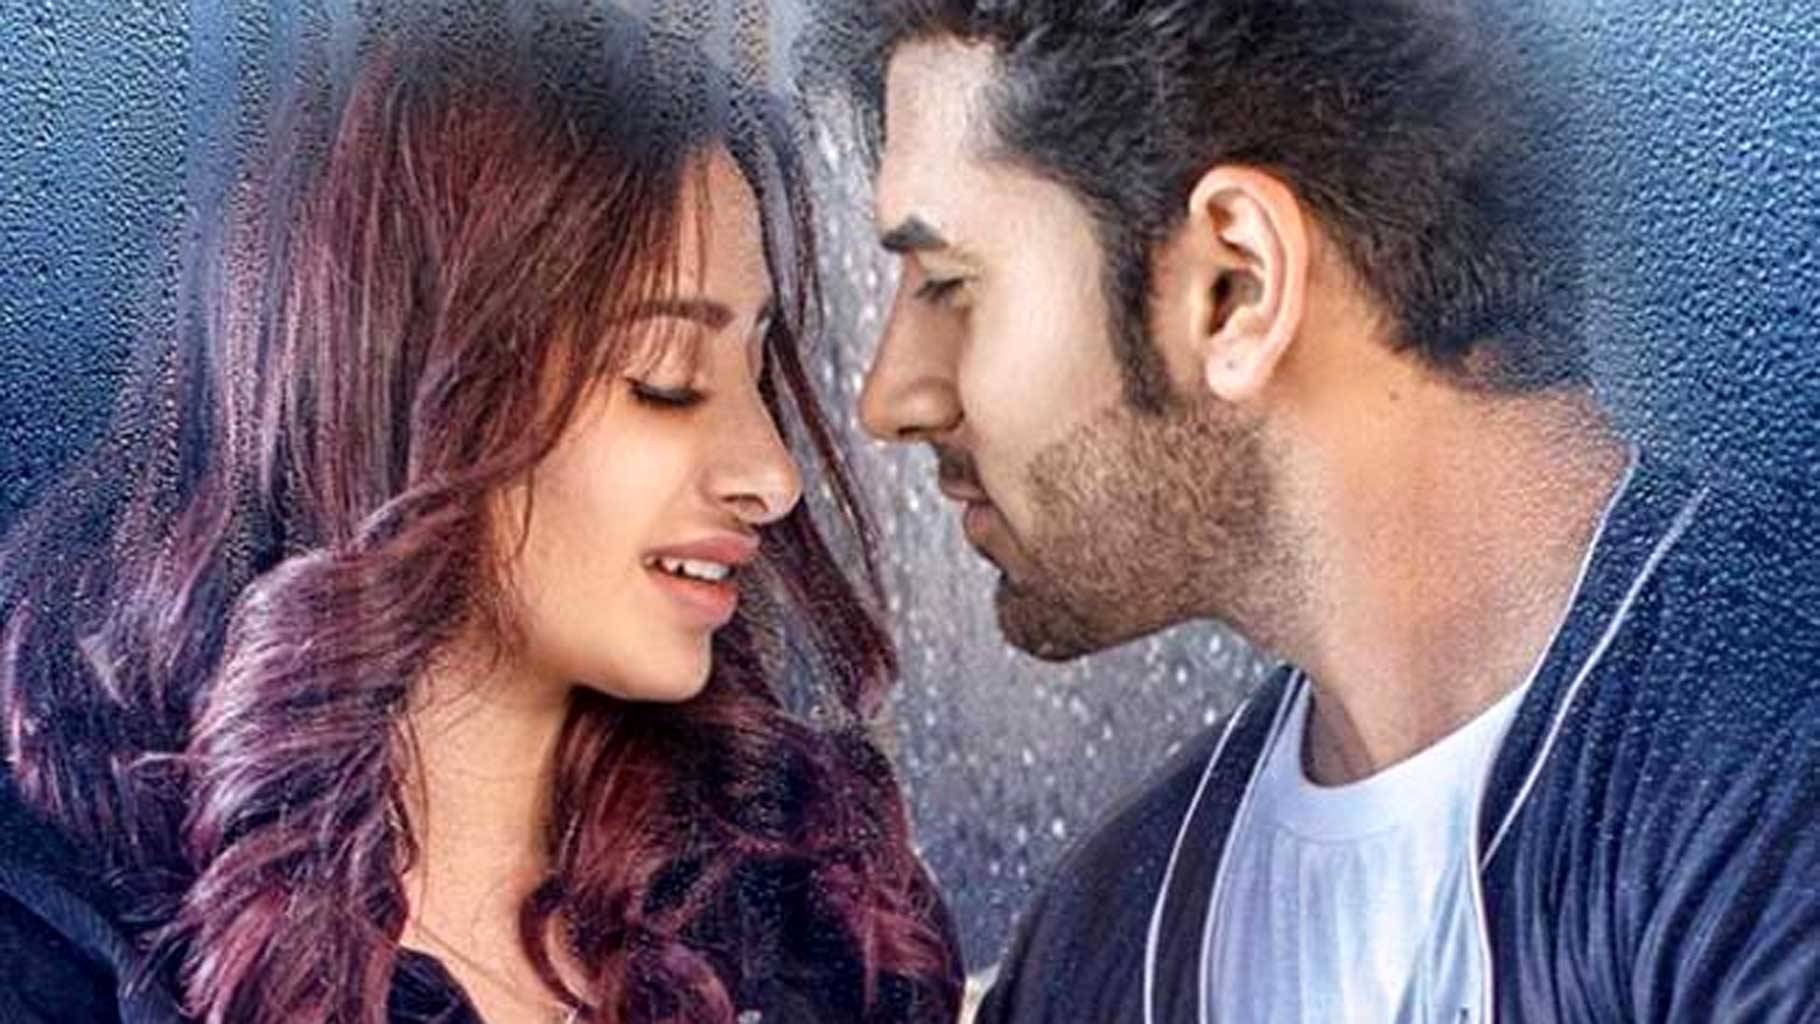 Paras Chhabra And Mahira Sharma To Romance Each Other In A Punjabi Flick